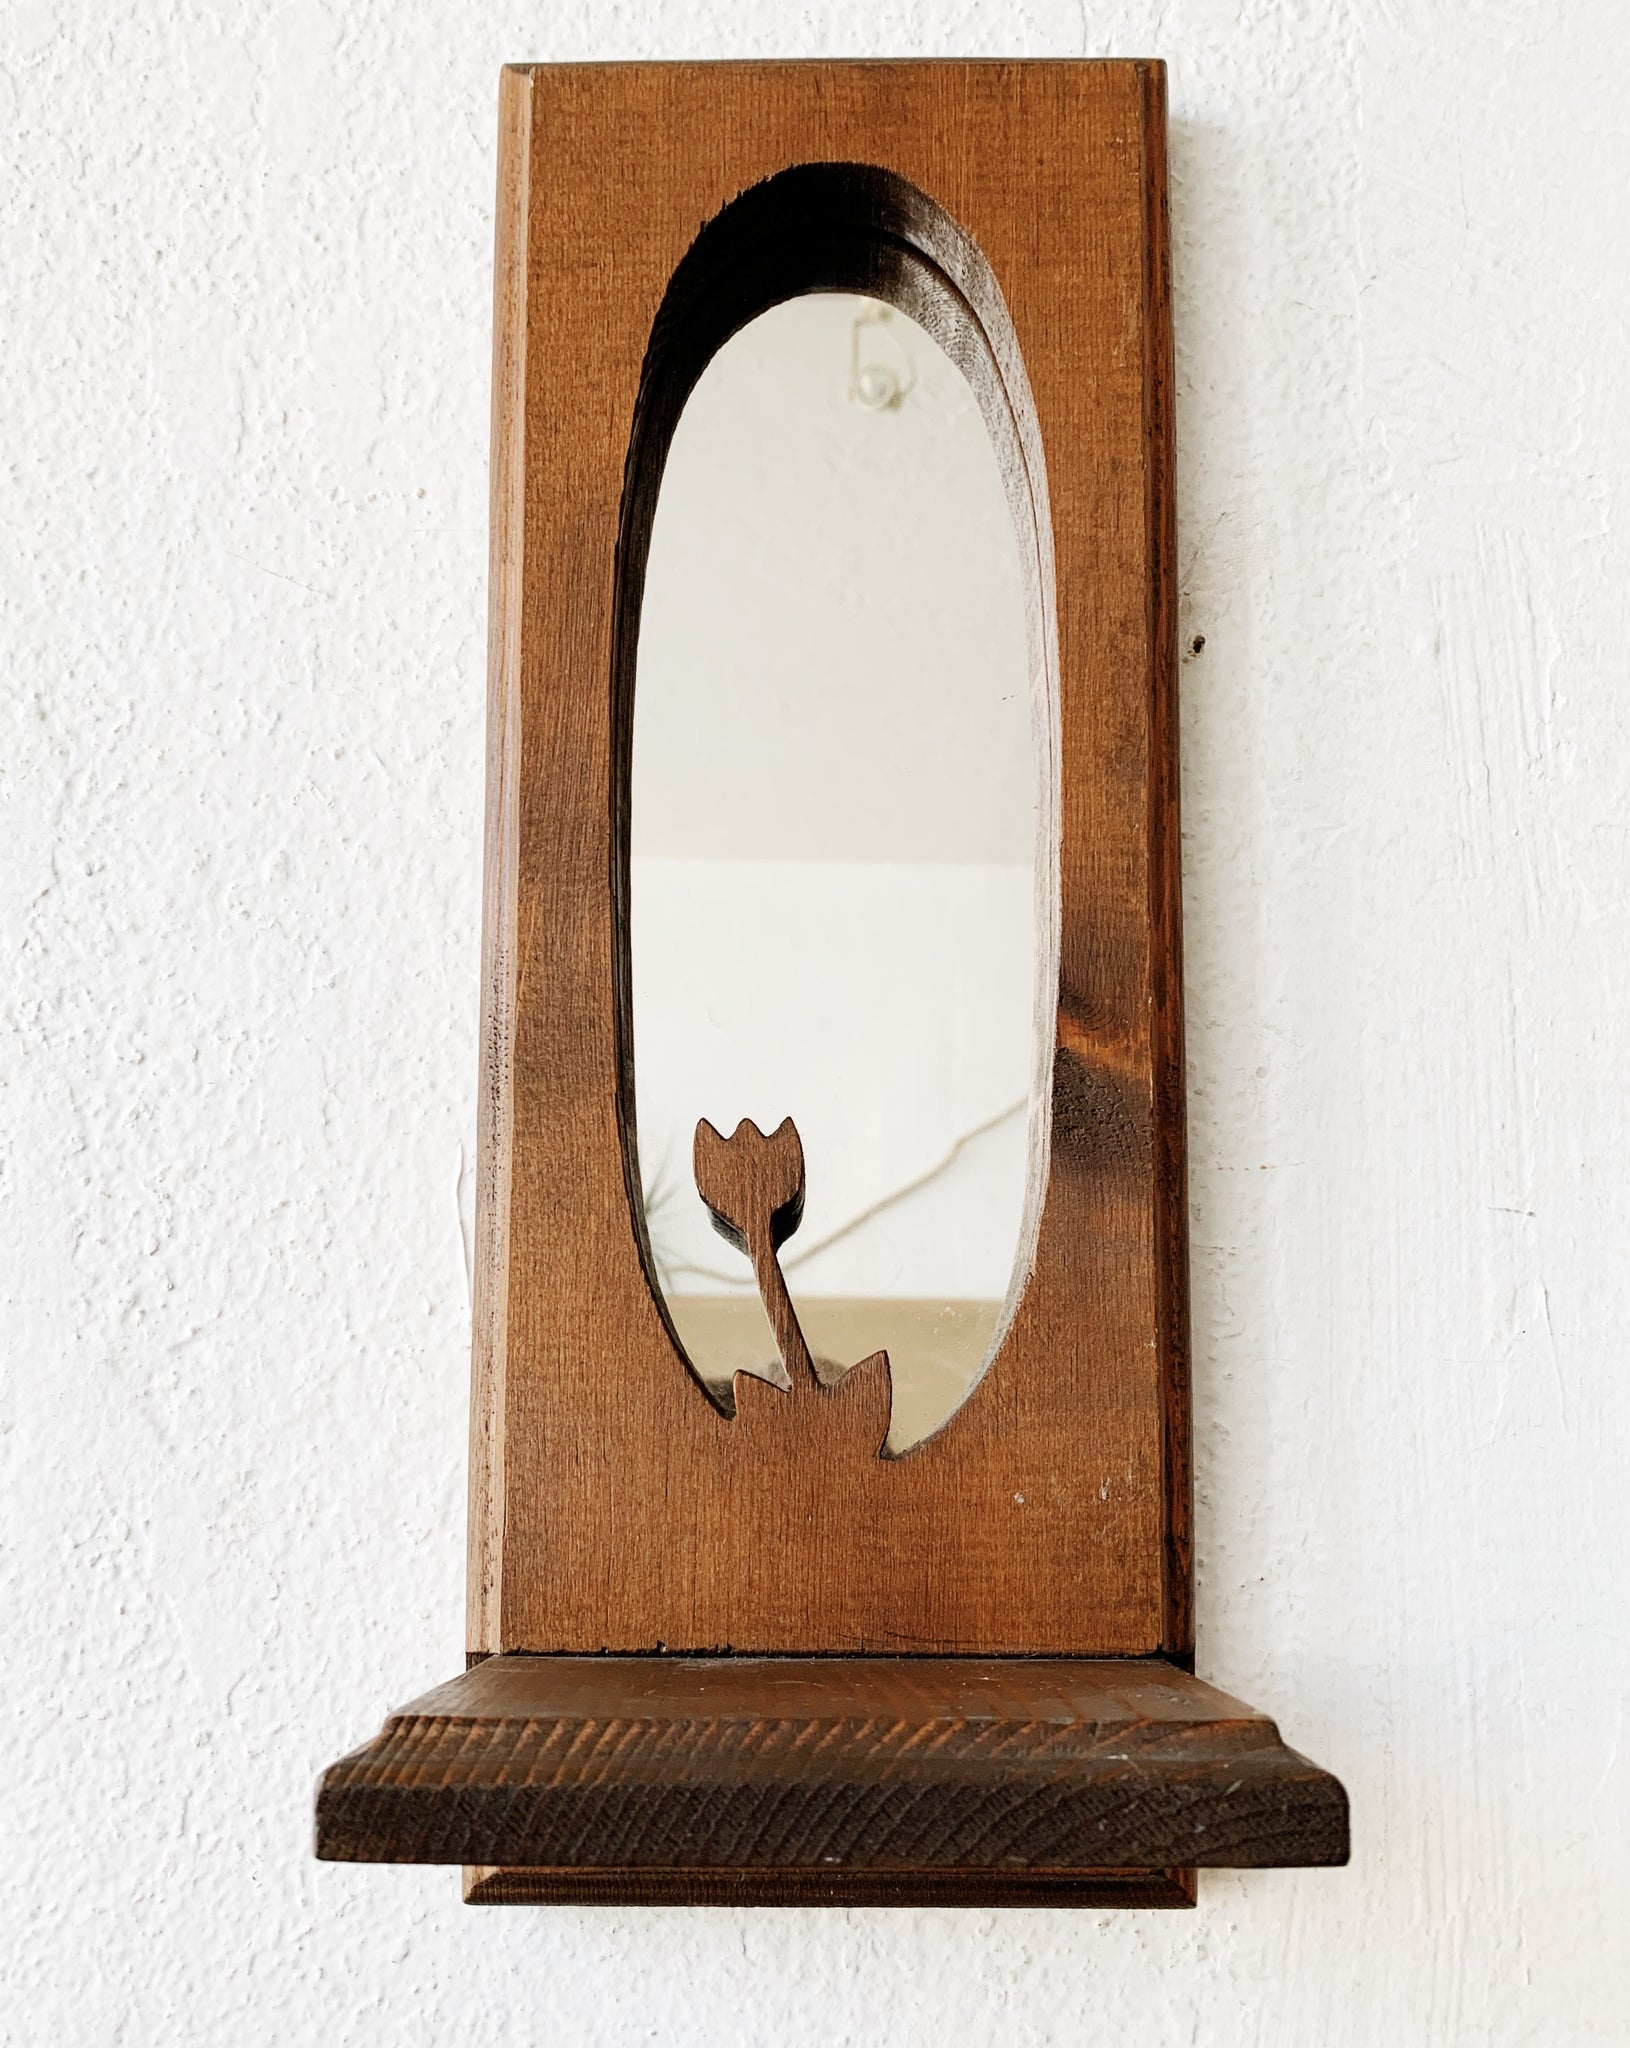 Vintage Wood Mirrored Shelf